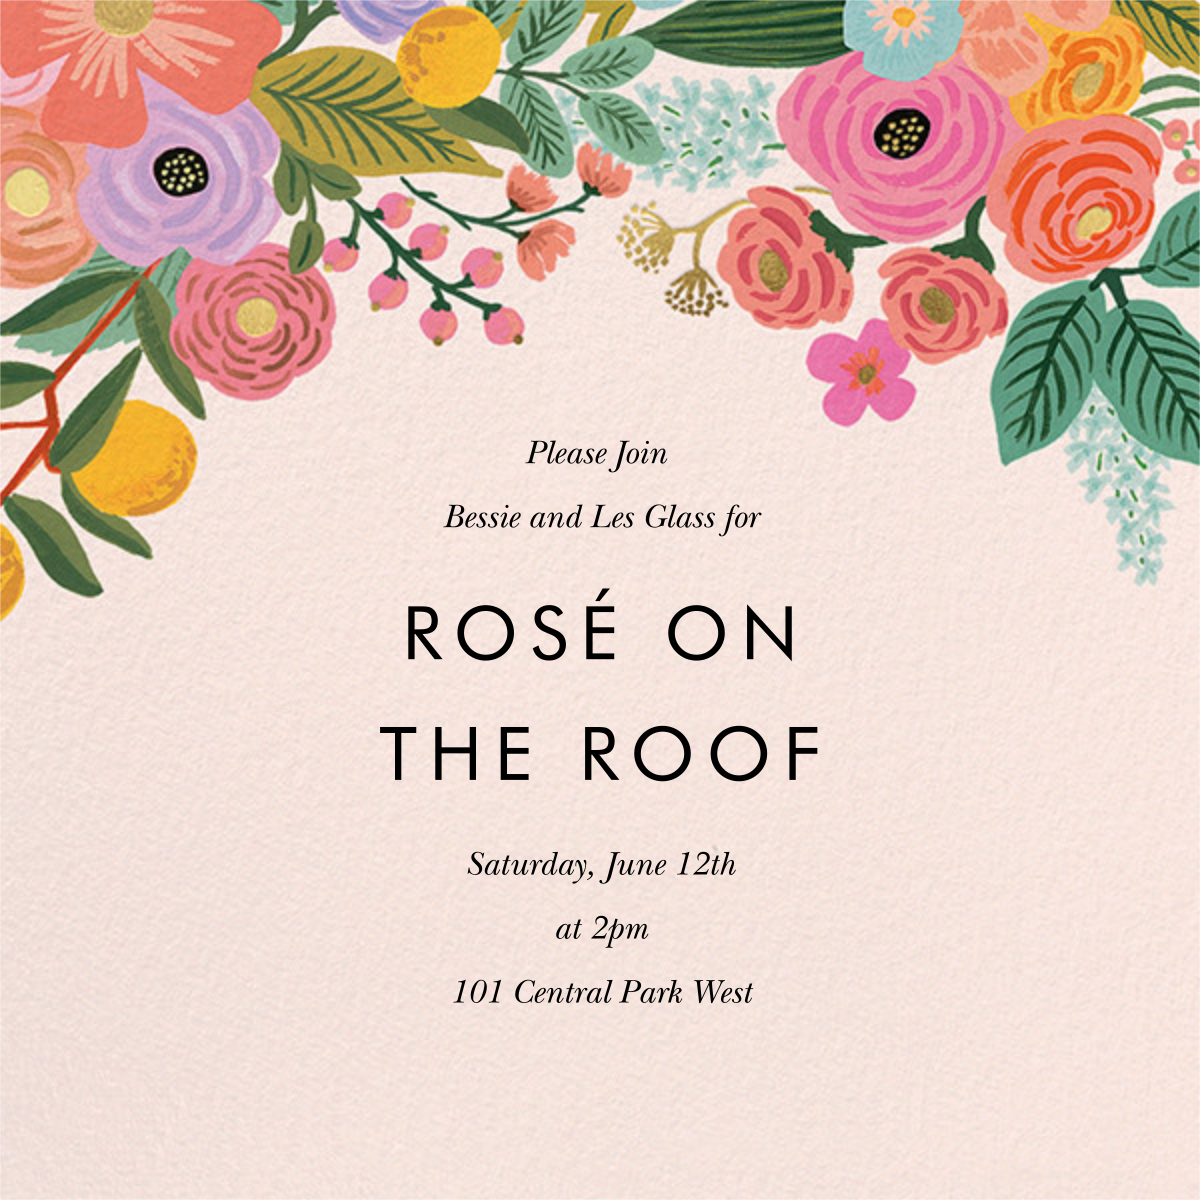 Garden Party (Square) - Rifle Paper Co. - Printable invitations